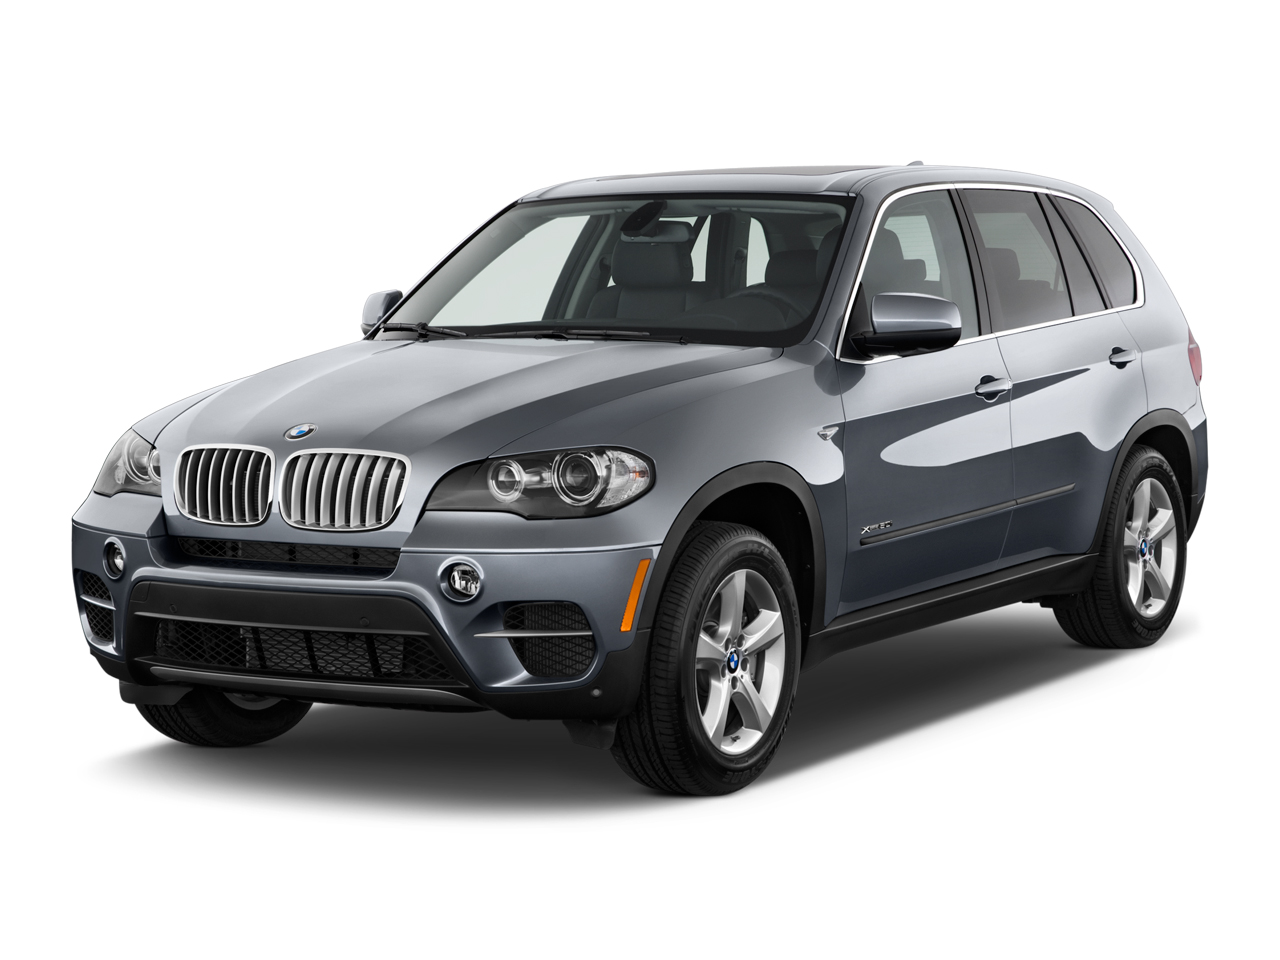 2011 bmw x5 gas mileage the car connection. Black Bedroom Furniture Sets. Home Design Ideas